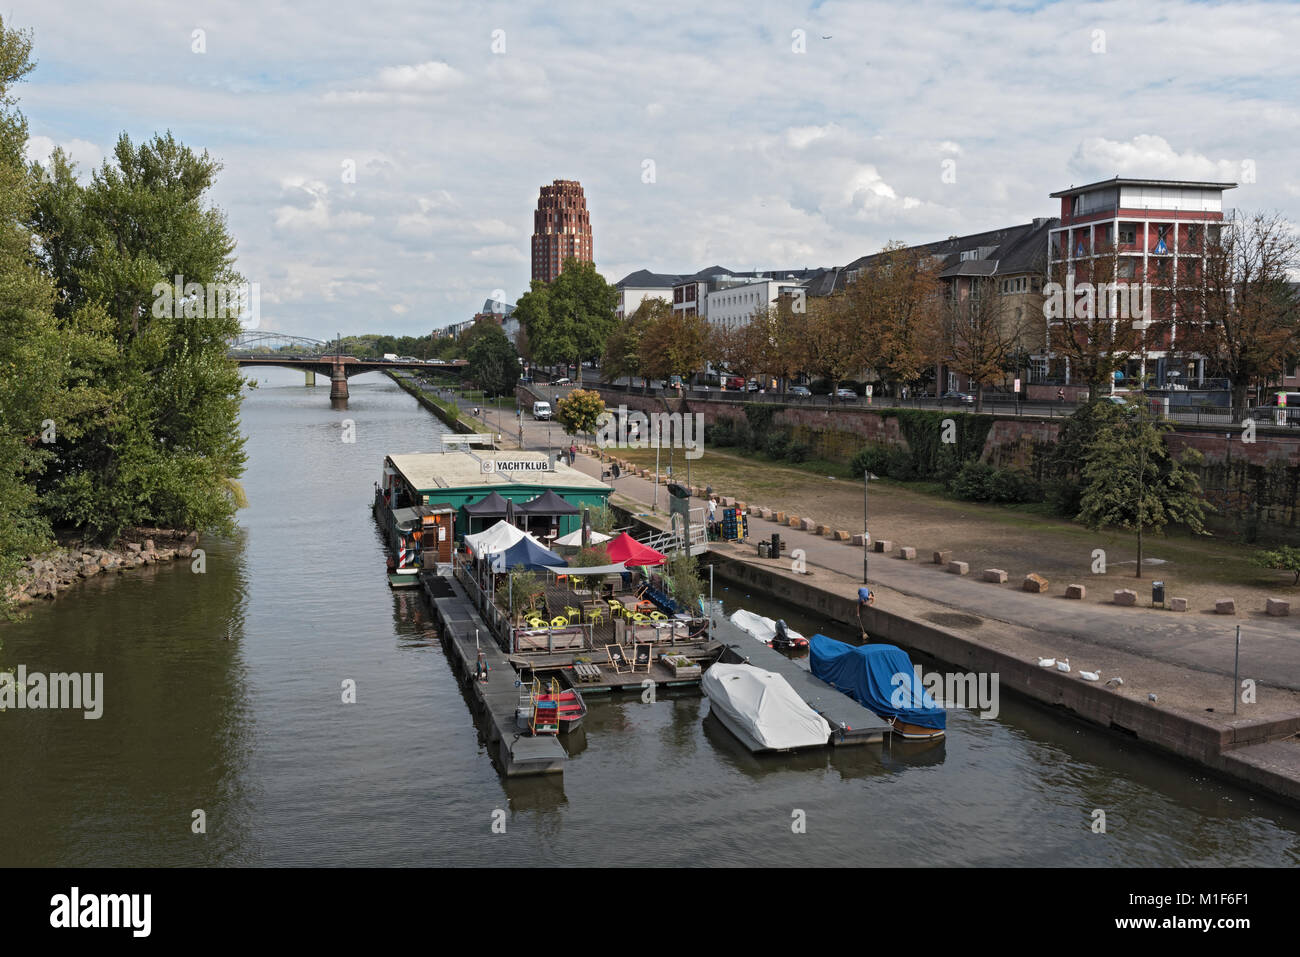 Floating Club on the Main river in Frankfurt am Main, Germany - Stock Image